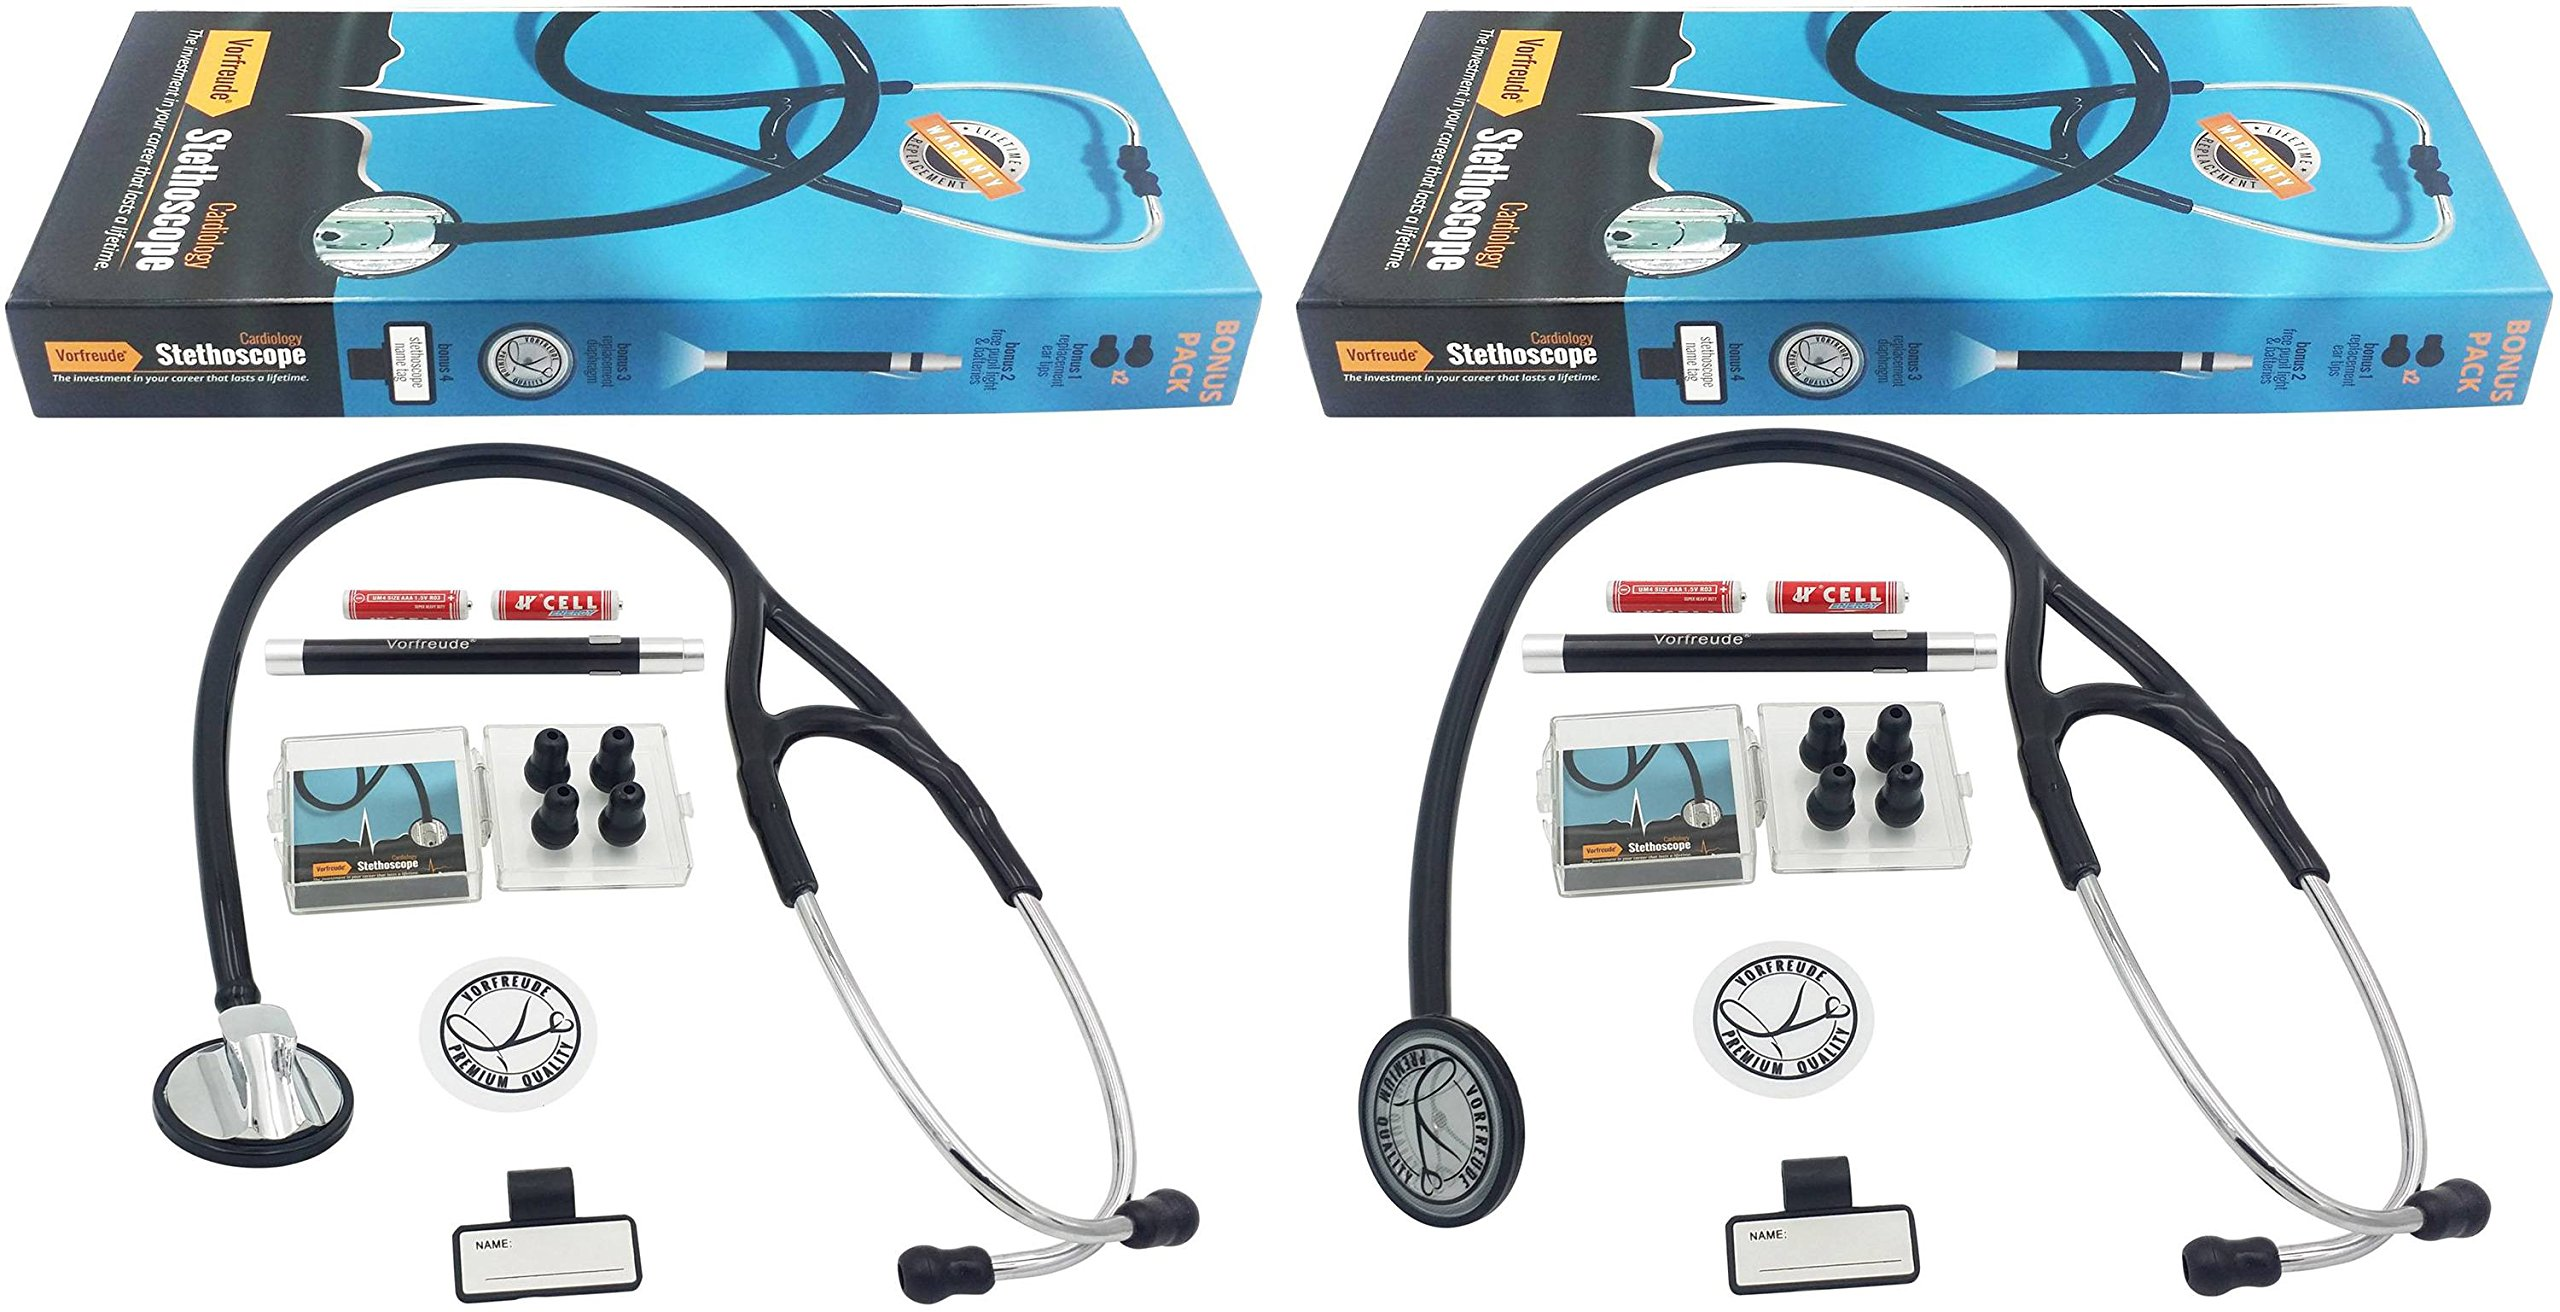 Vorfreude Cardiology Stethoscope Lifetime Replacement Guarantee (27'' Black) Bonus: Name Tag, Classic Pupil Pen Light, Batteries, Spare Diaphragm and 6 Eartips. (Total Qty 2 Kits) by Vorfreude